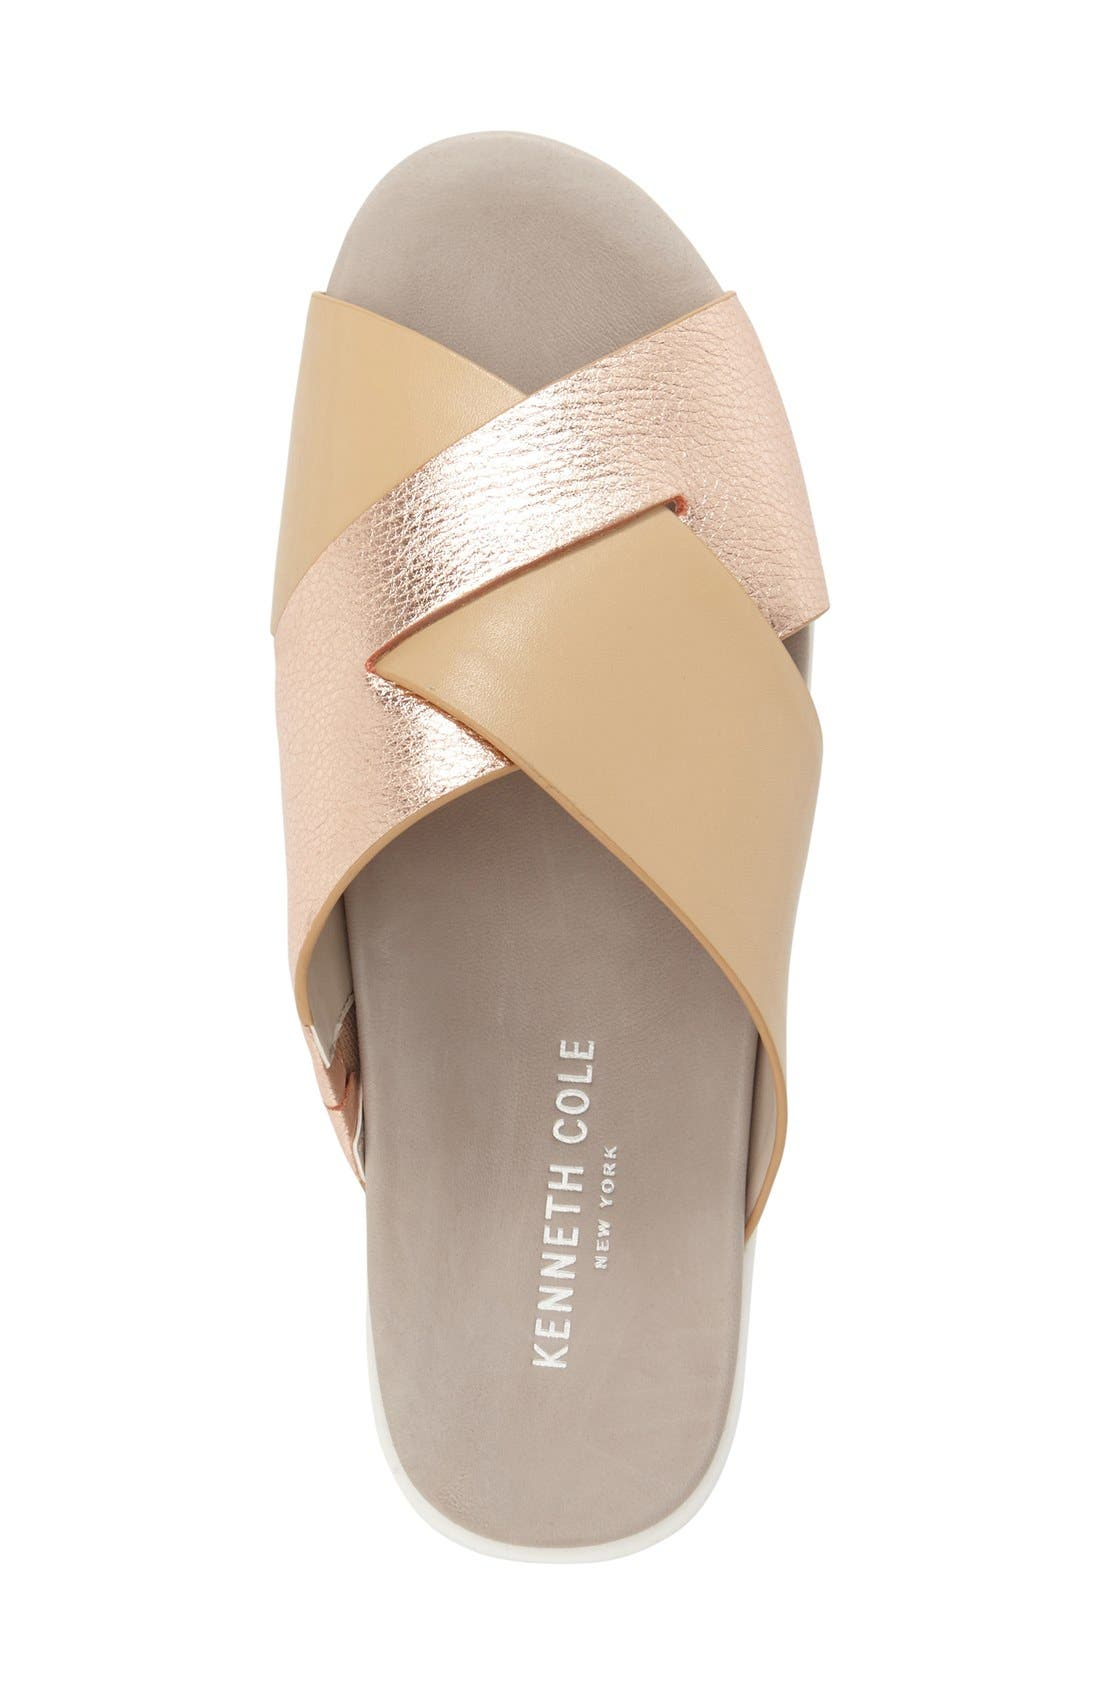 'Maxwell' Sandal,                             Alternate thumbnail 3, color,                             Rose Gold/ Nude Leather